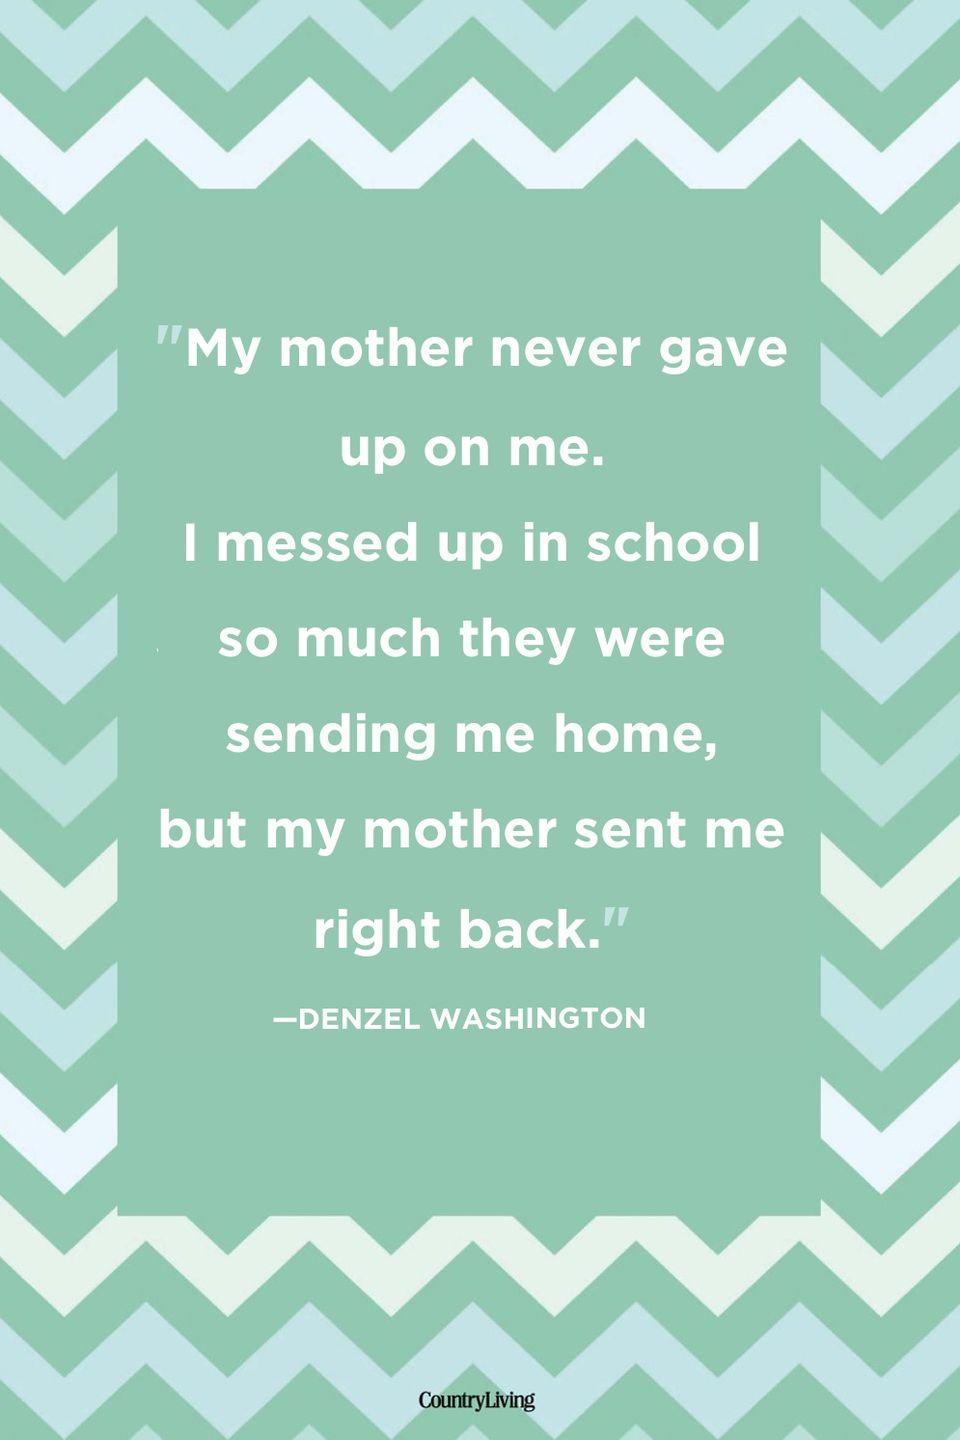 "<p>""My mother never gave up on me. I messed up in school so much they were sending me home, but my mother sent me right back.""</p>"